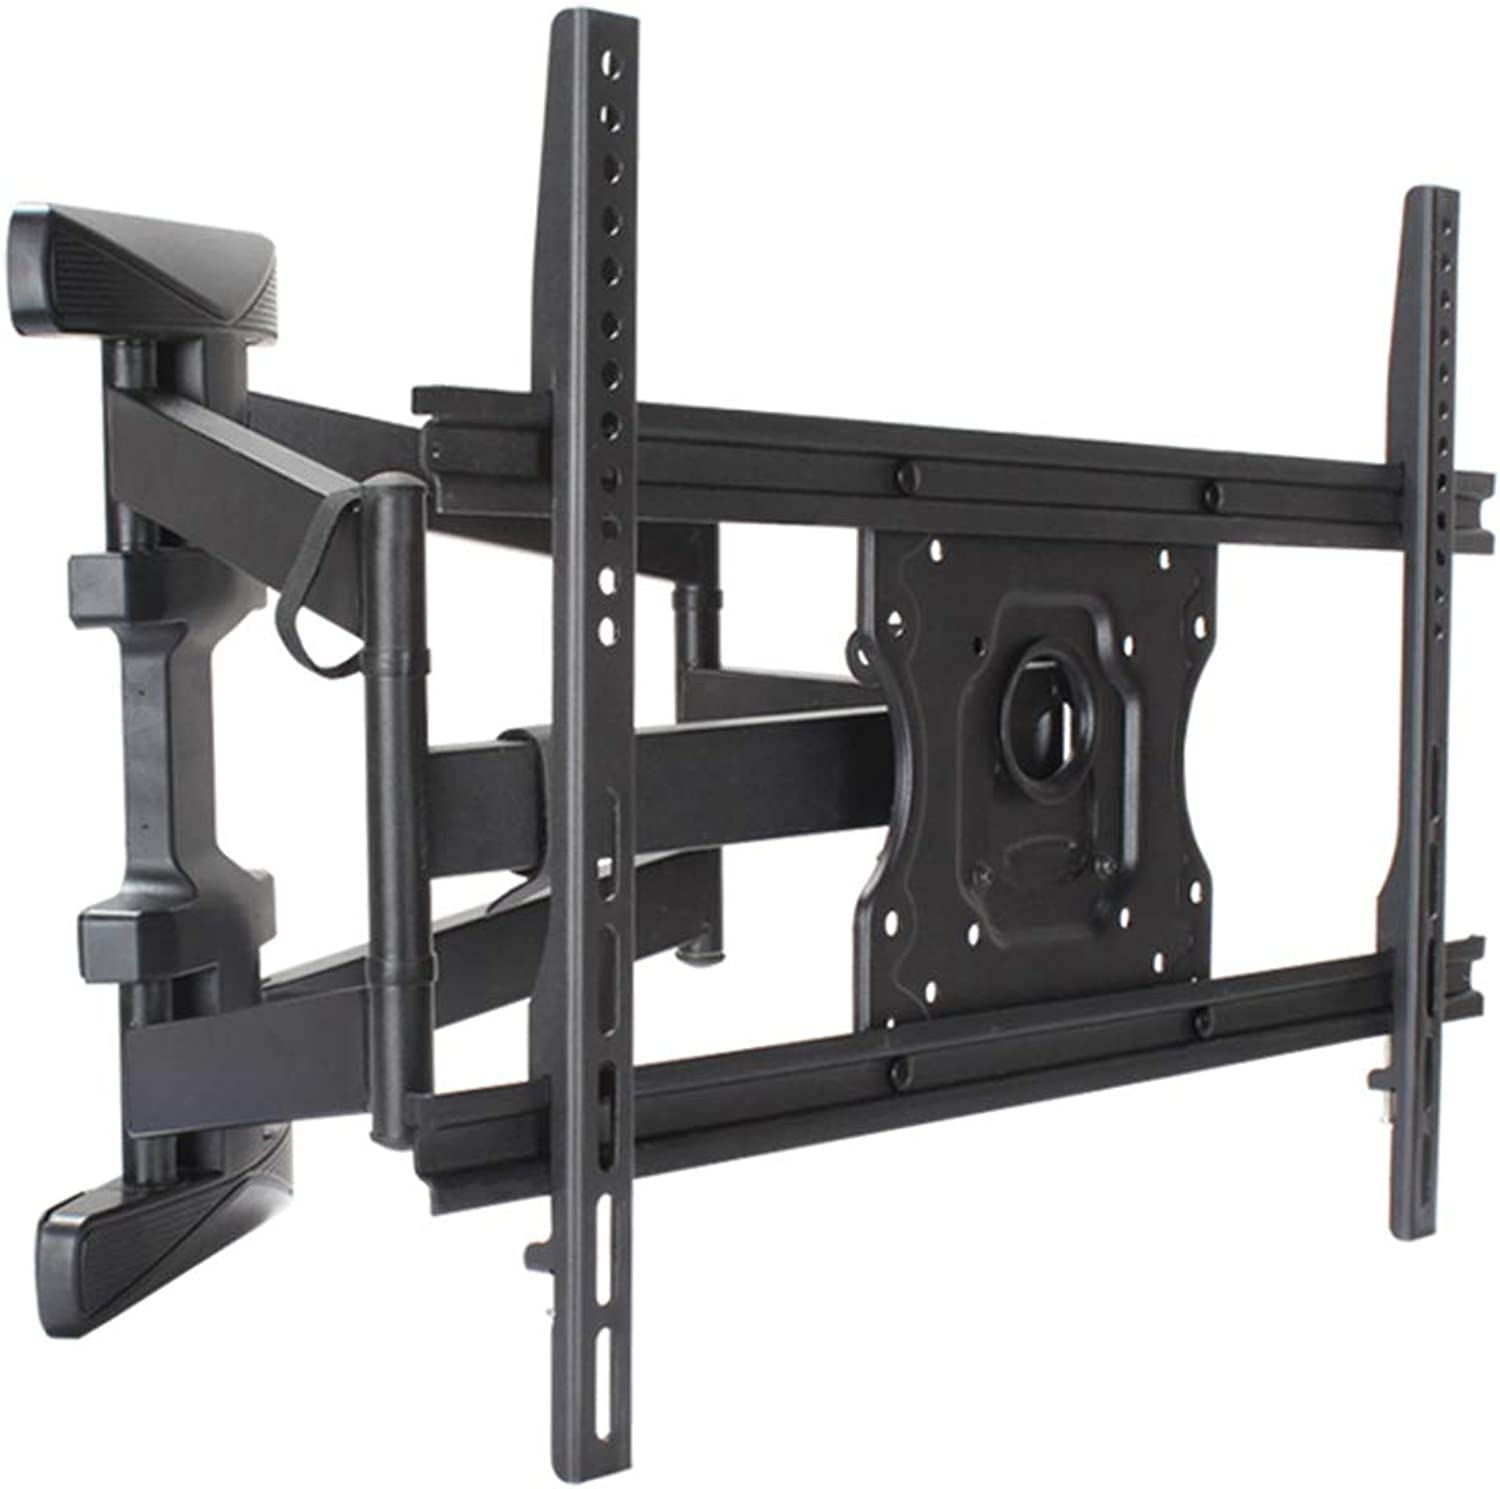 Wall TV Bracket, Plasma Flat Retractable LCD Bracket TV Mount Wall Mount Wall Stand Adjustable Mount Arm Fit for 32 70  Max Support 45.8KG